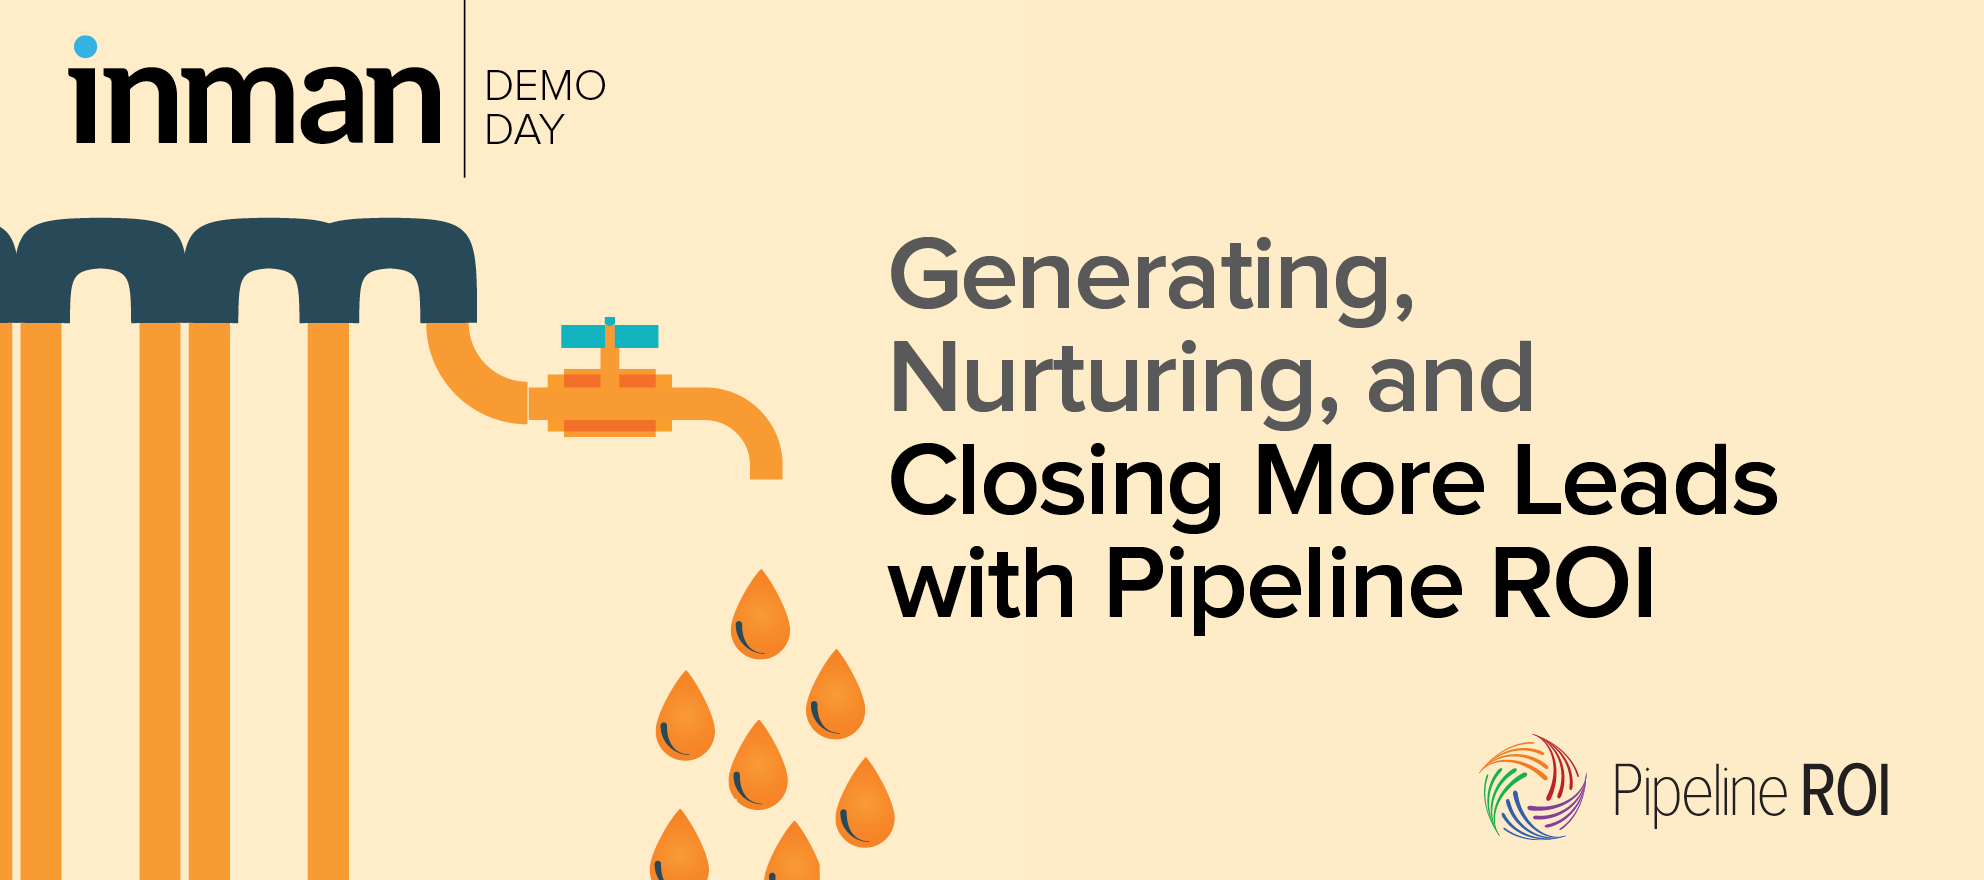 Generating, nurturing and closing more leads with Pipeline ROI